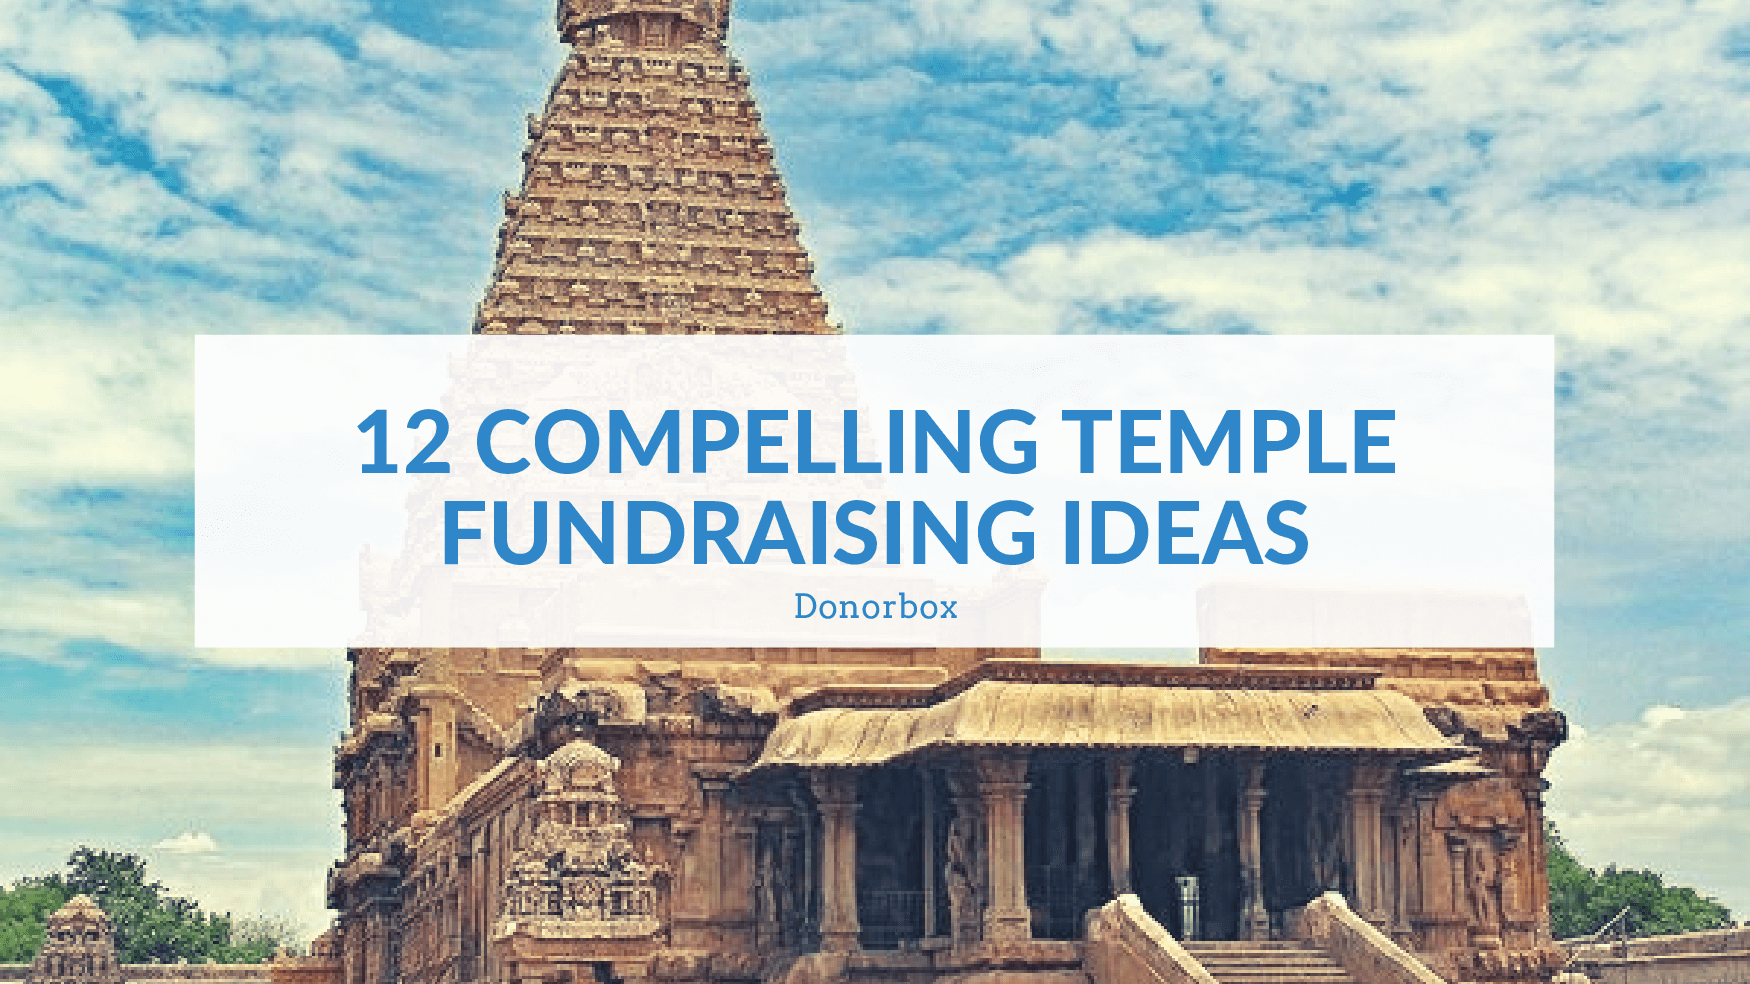 12 Compelling Temple Fundraising Ideas   A Nonprofit's Guide